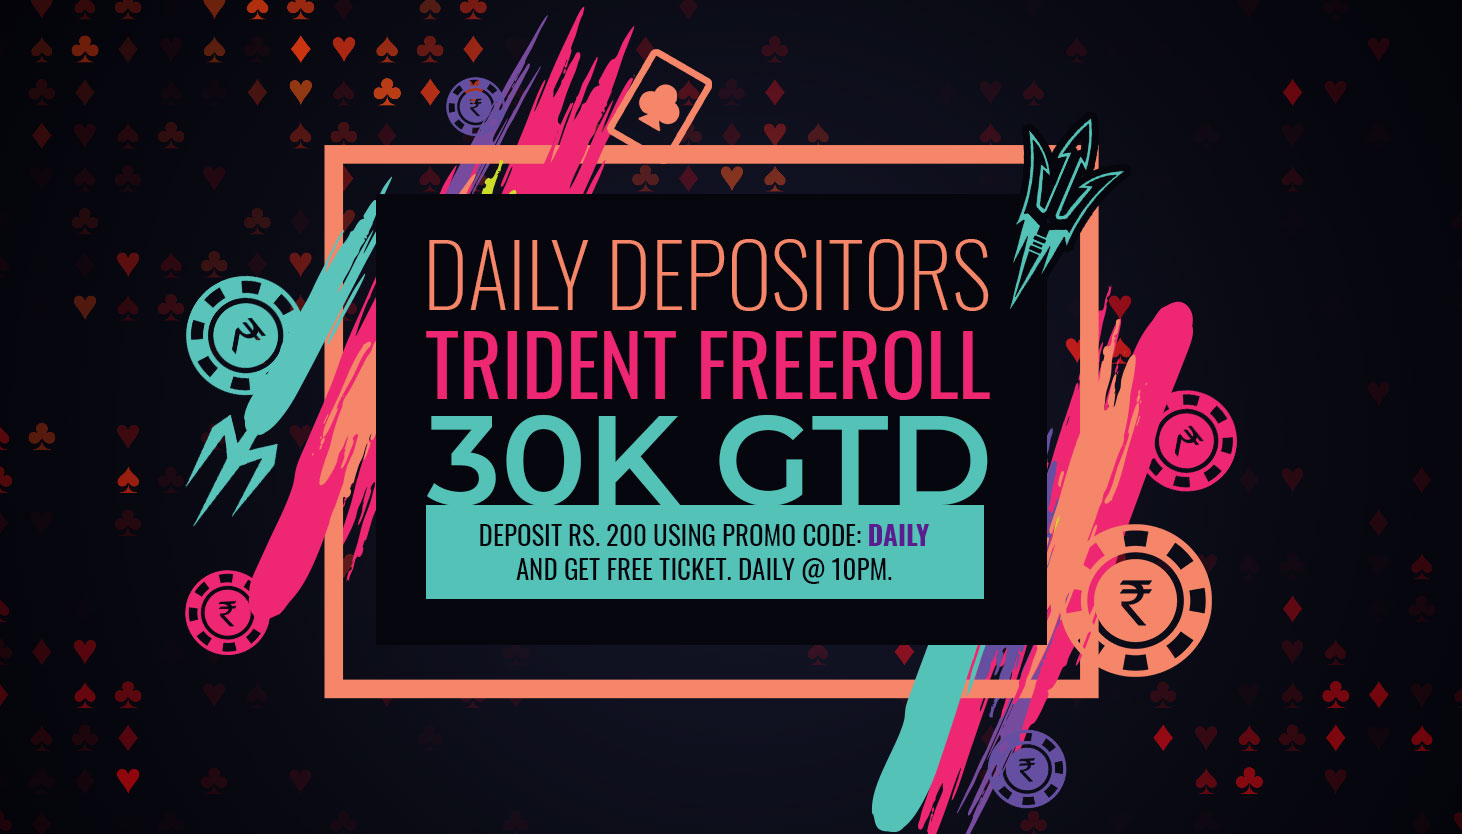 Daily Depositor Freeroll